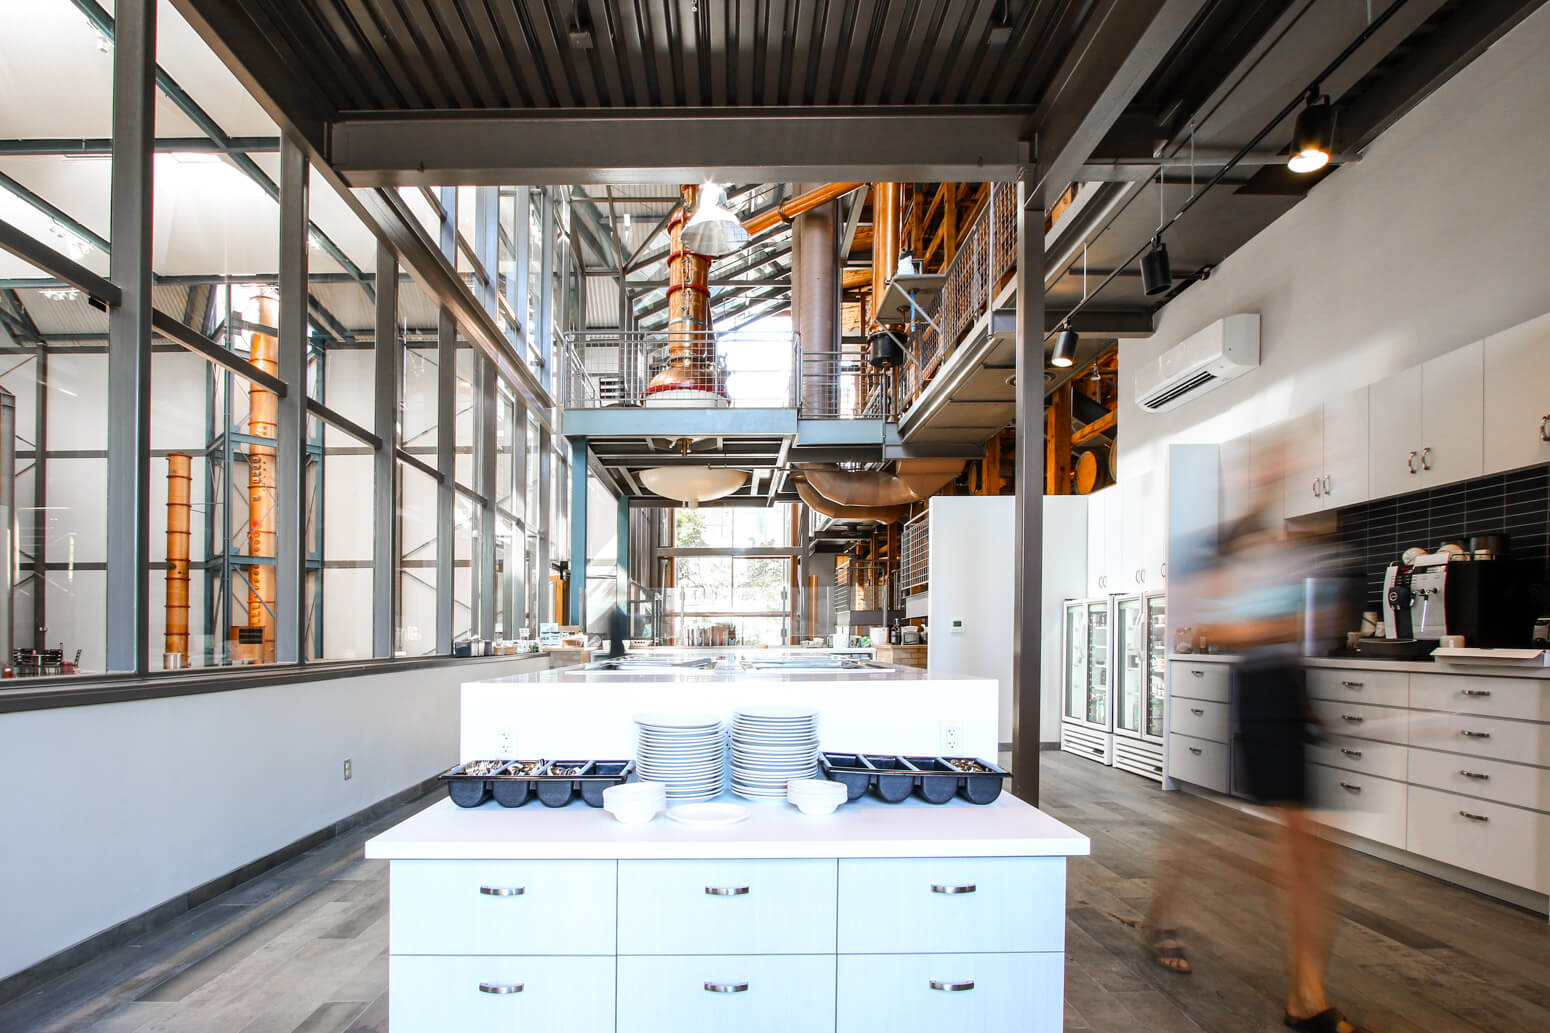 Shopify Waterloo Office Killer Spaces-9